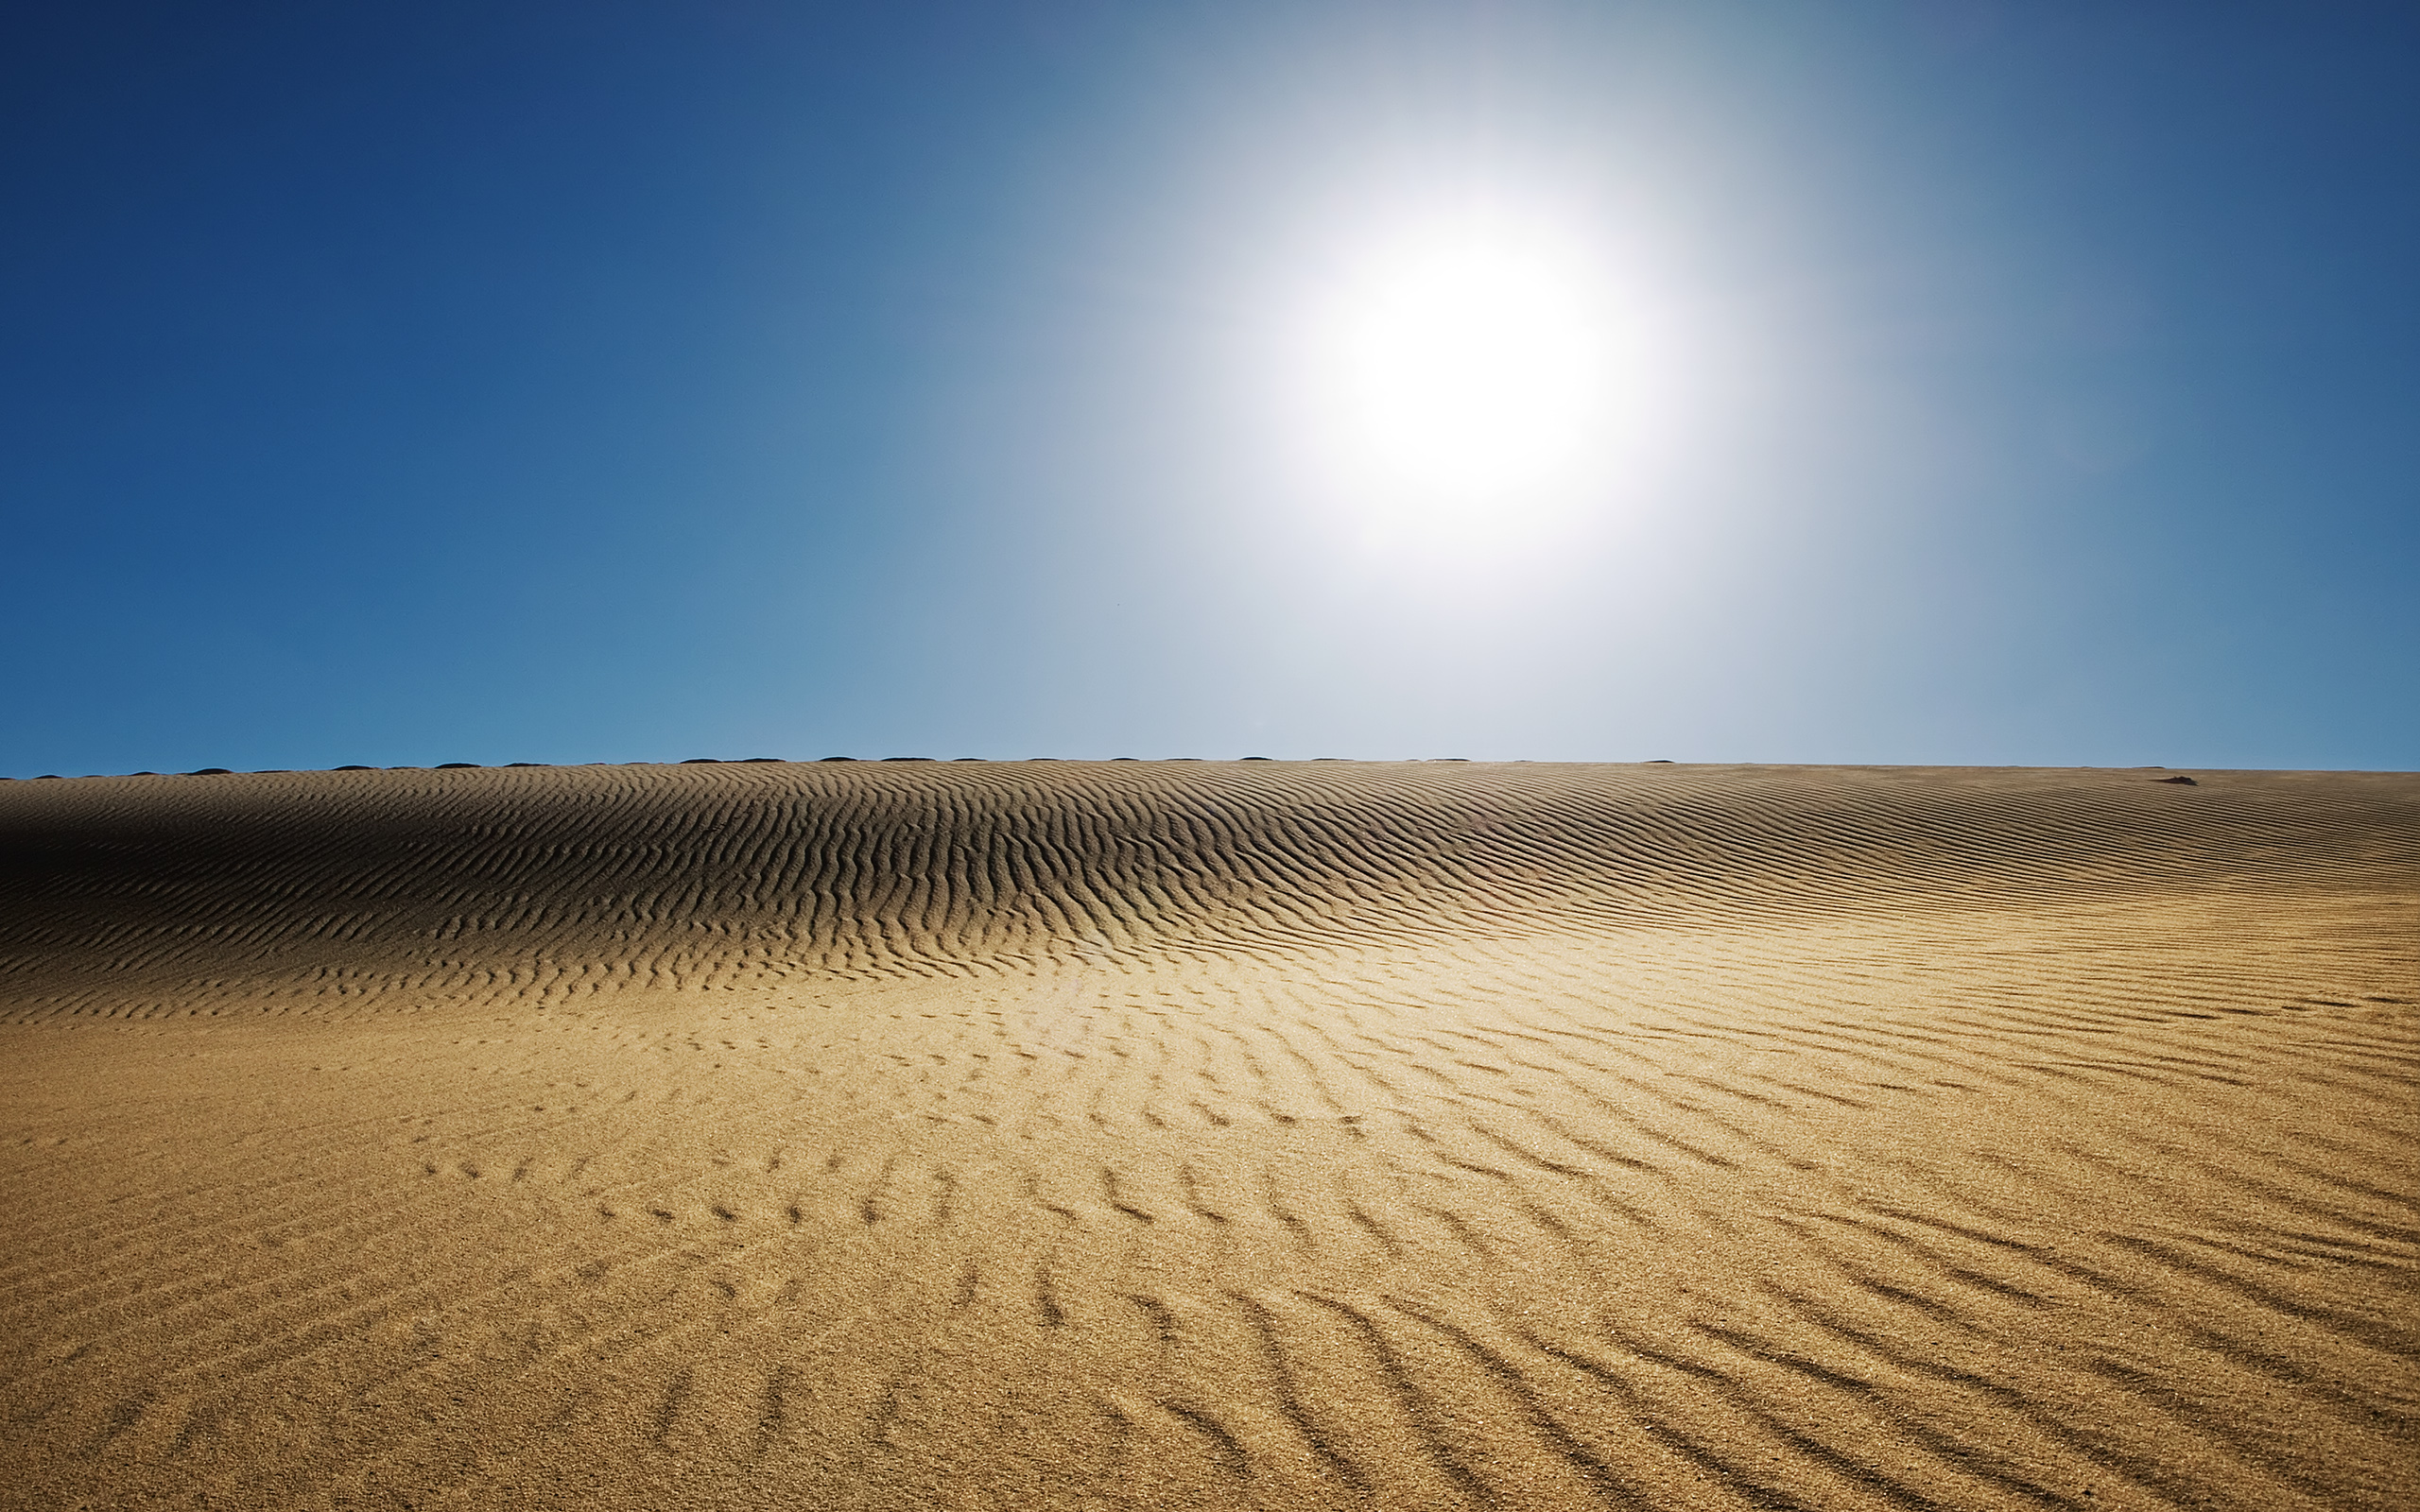 desert wallpapers high quality - photo #27